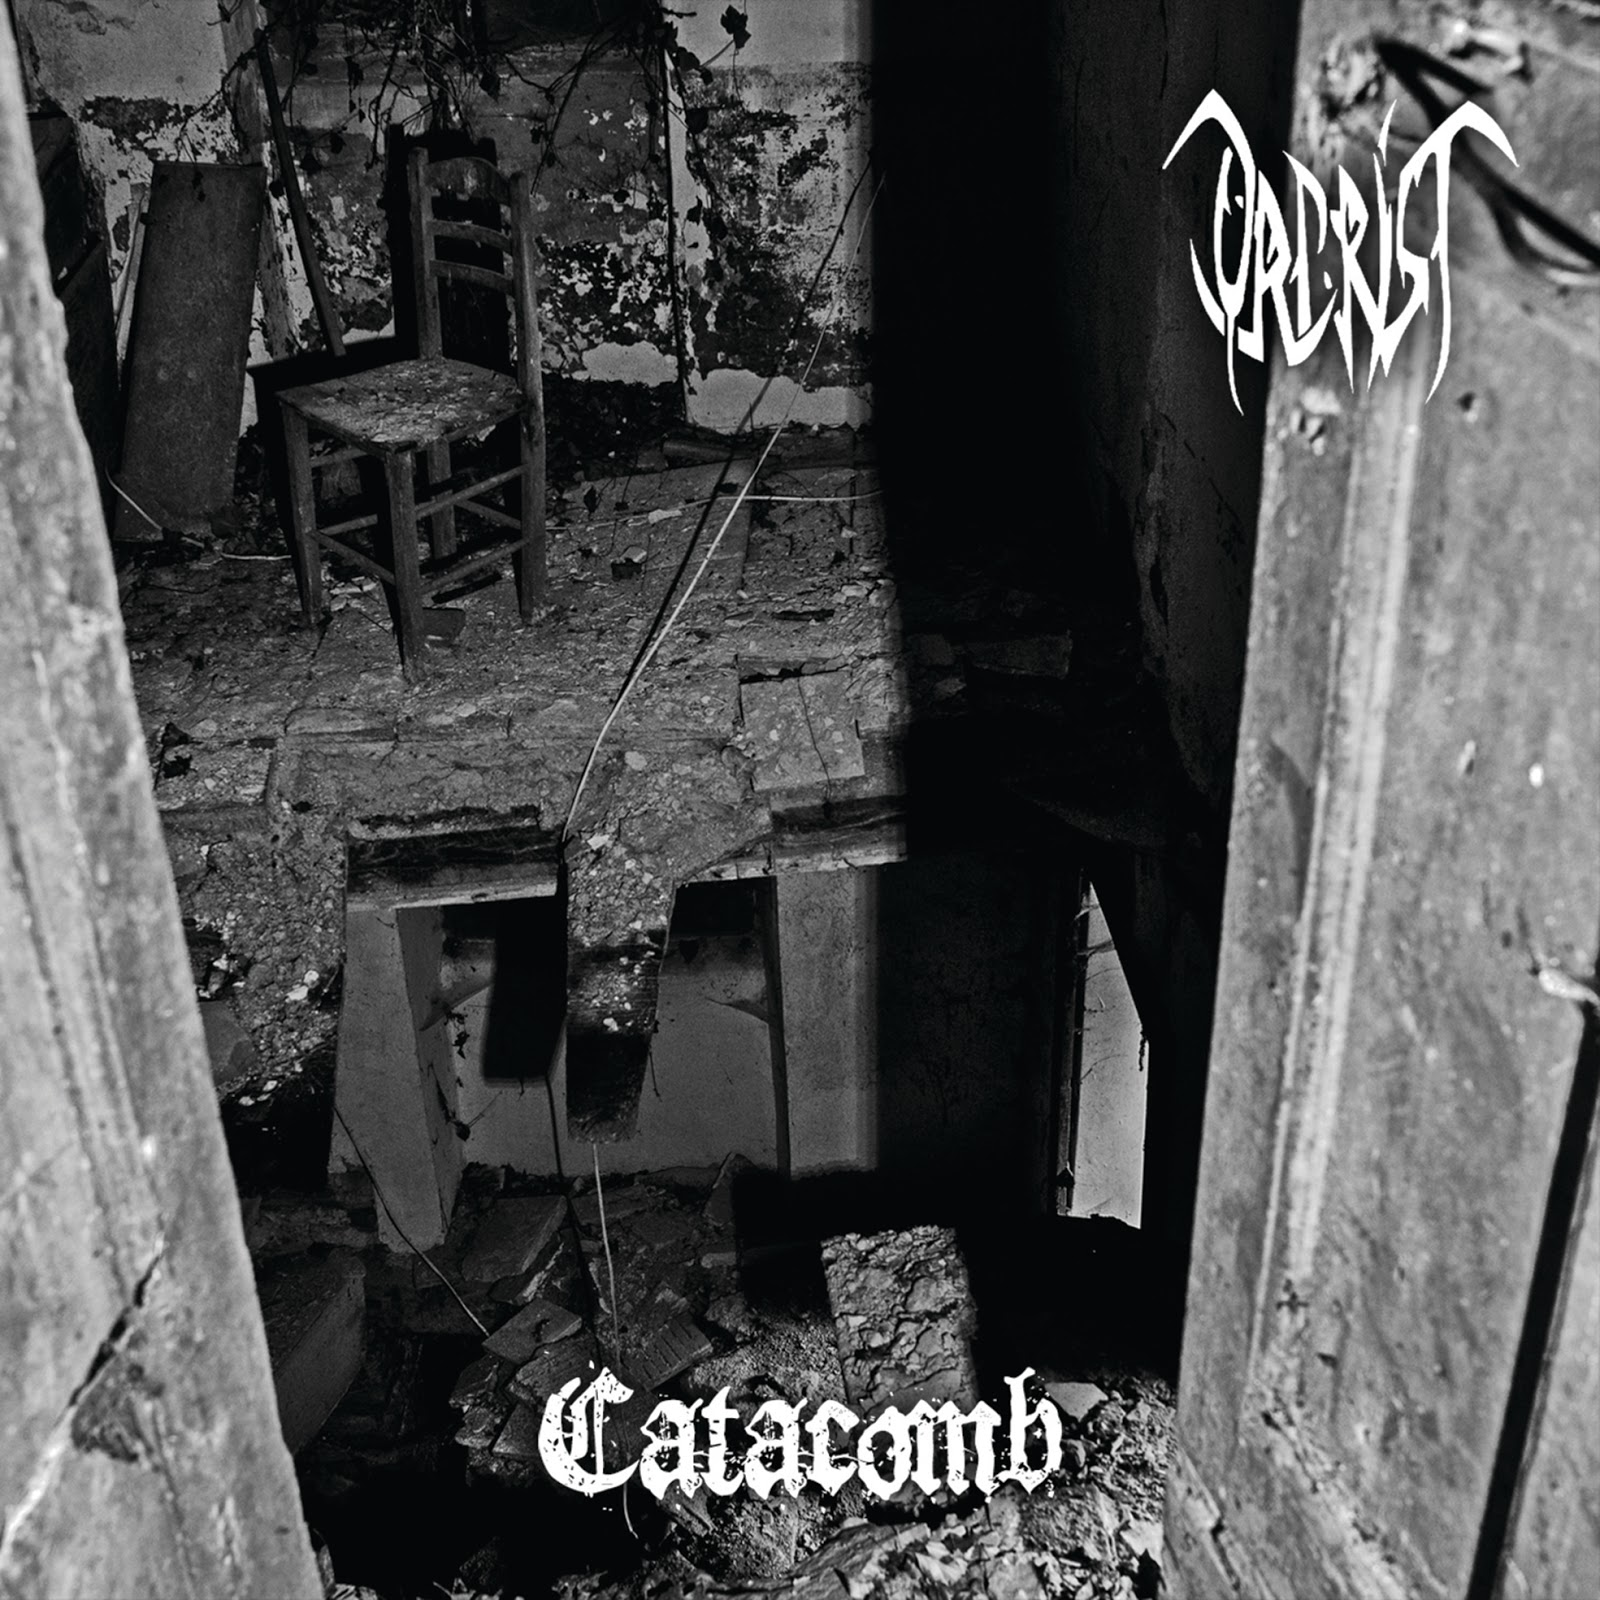 Catacomb: nuovo album per la band Orcrist